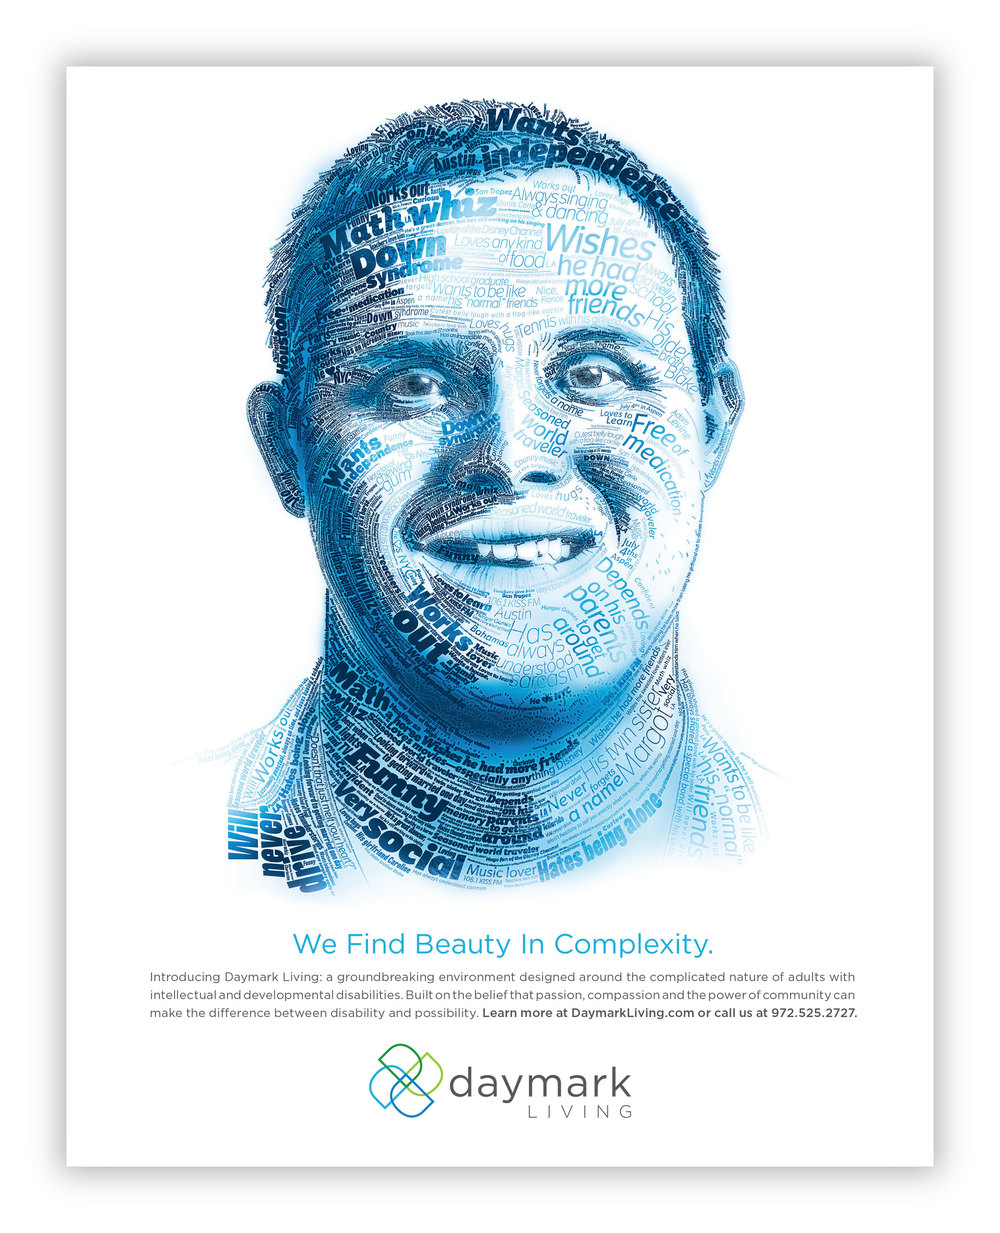 daymark-ads-michael.jpg